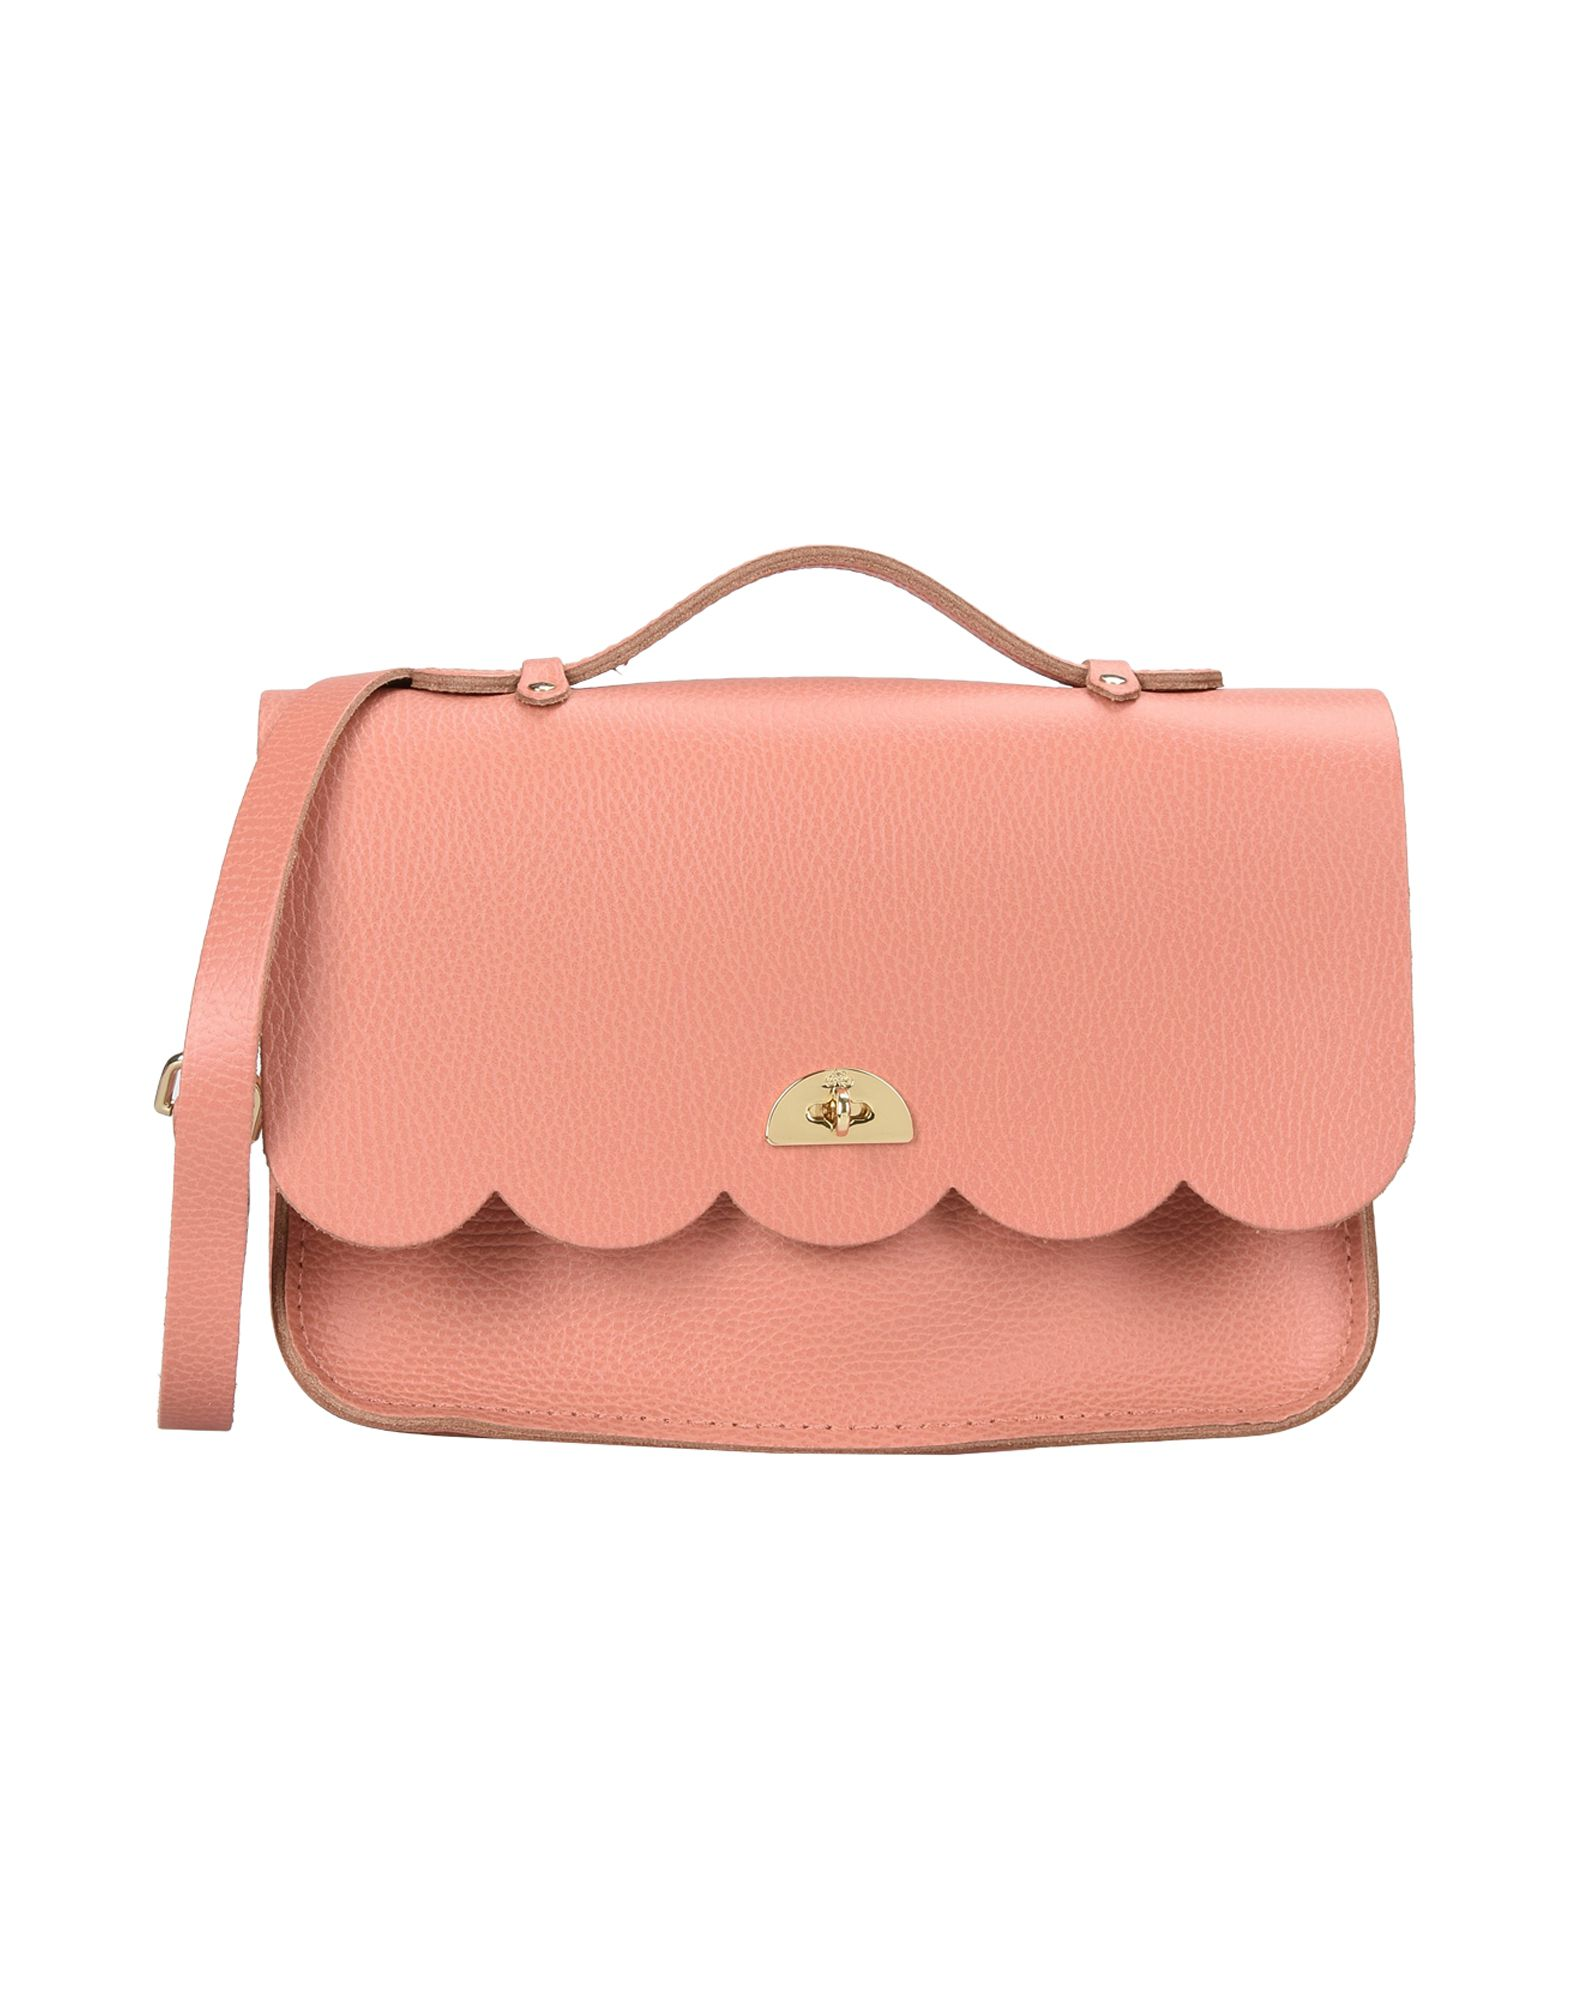 Borsa A Mano The Cambridge Satchel Company Cloud Bag With Handle - Donna - Acquista online su